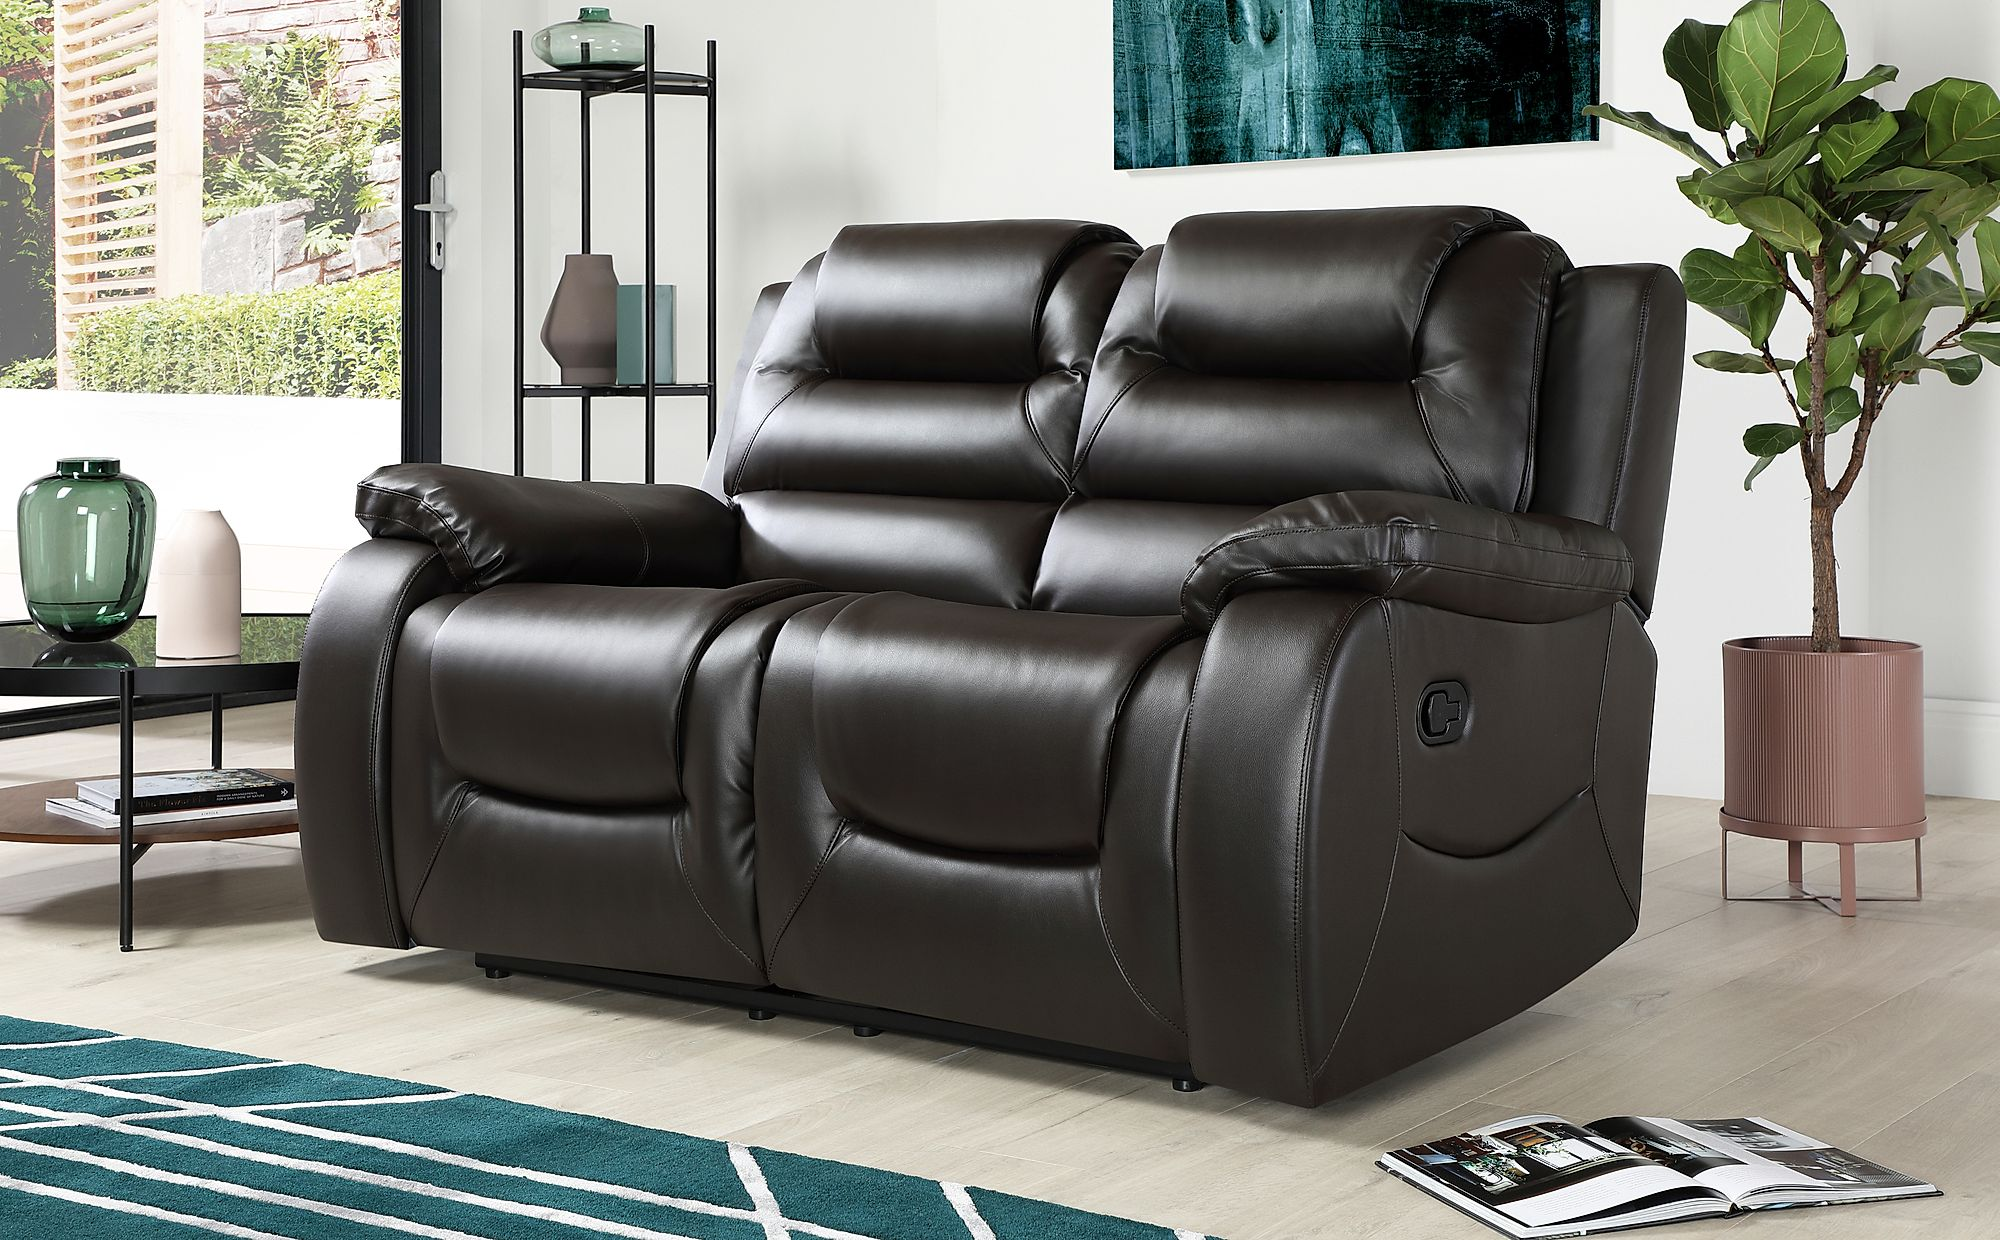 Vancouver Brown Leather 2 Seater Recliner Sofa Furniture Choice